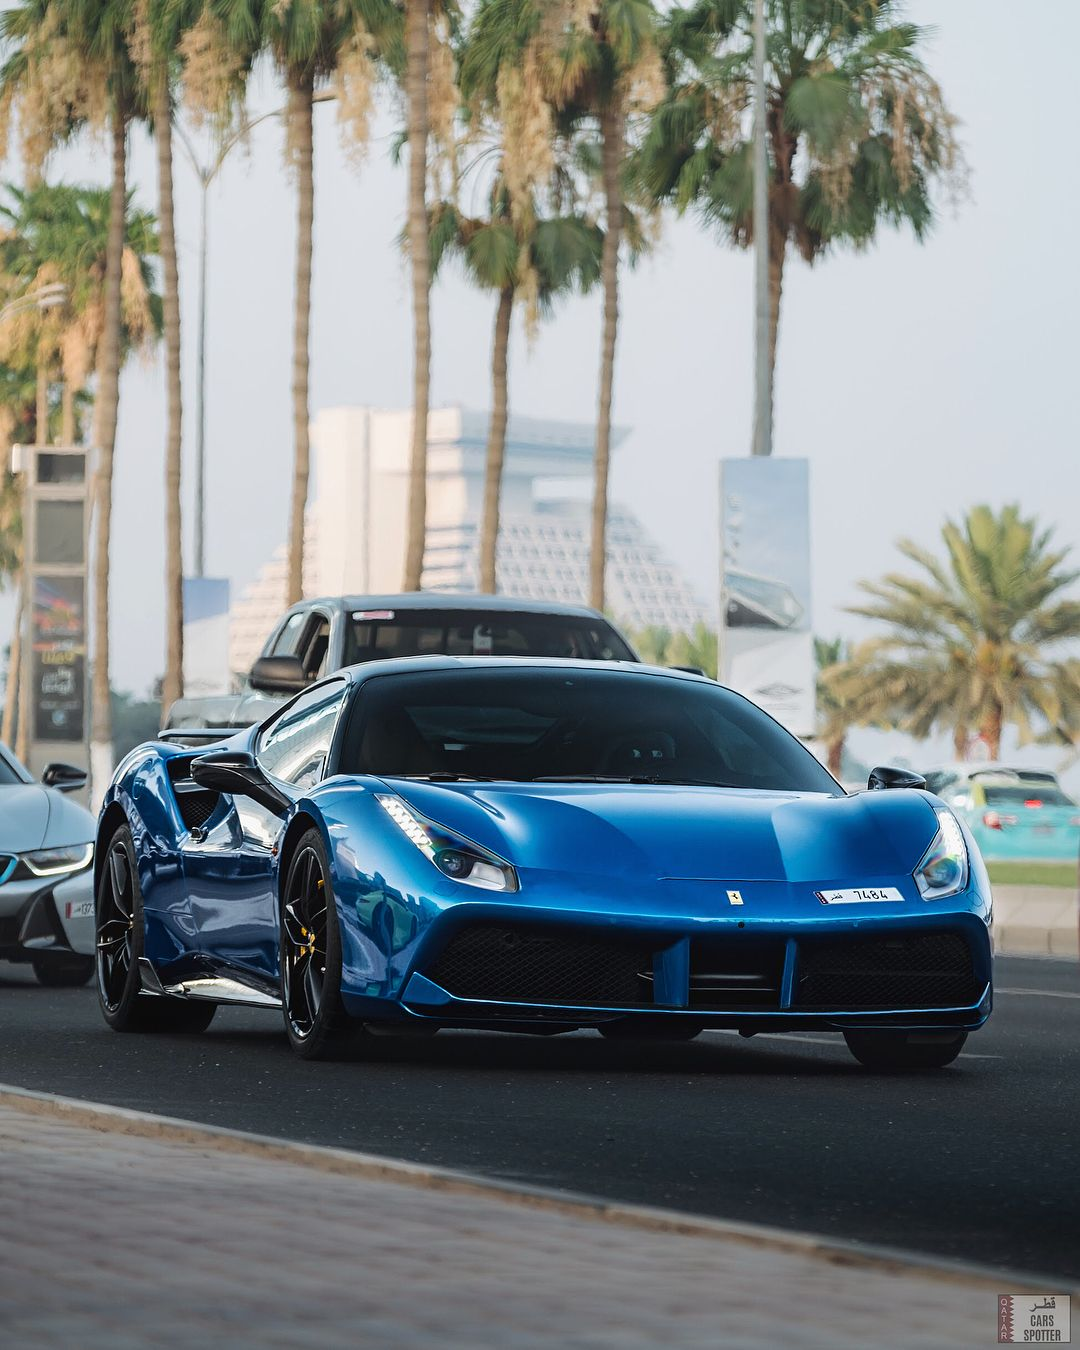 Nicely Specced 488 Ferrari 488 Gtb Spotted At The Ramadan